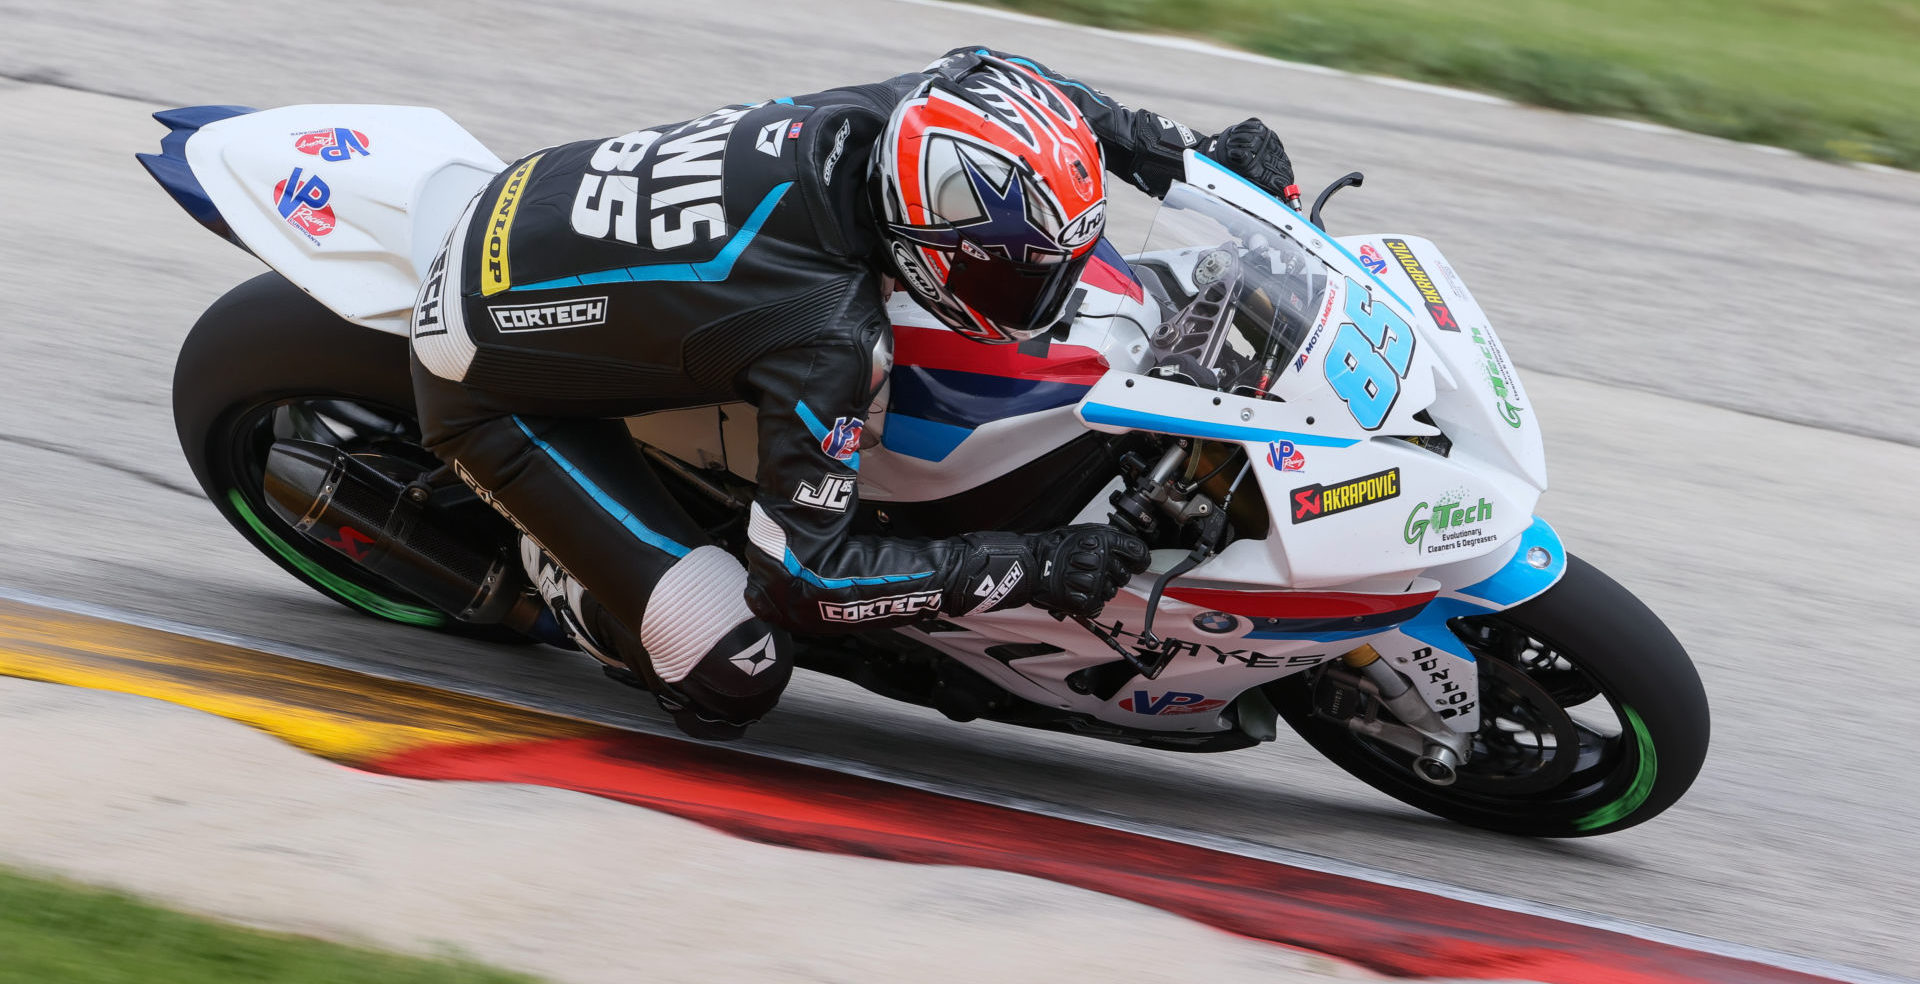 Jake Lewis (85) riding a Scheibe Racing BMW Superbike during the MotoAmerica Road America I event. Photo by Brian J. Nelson.